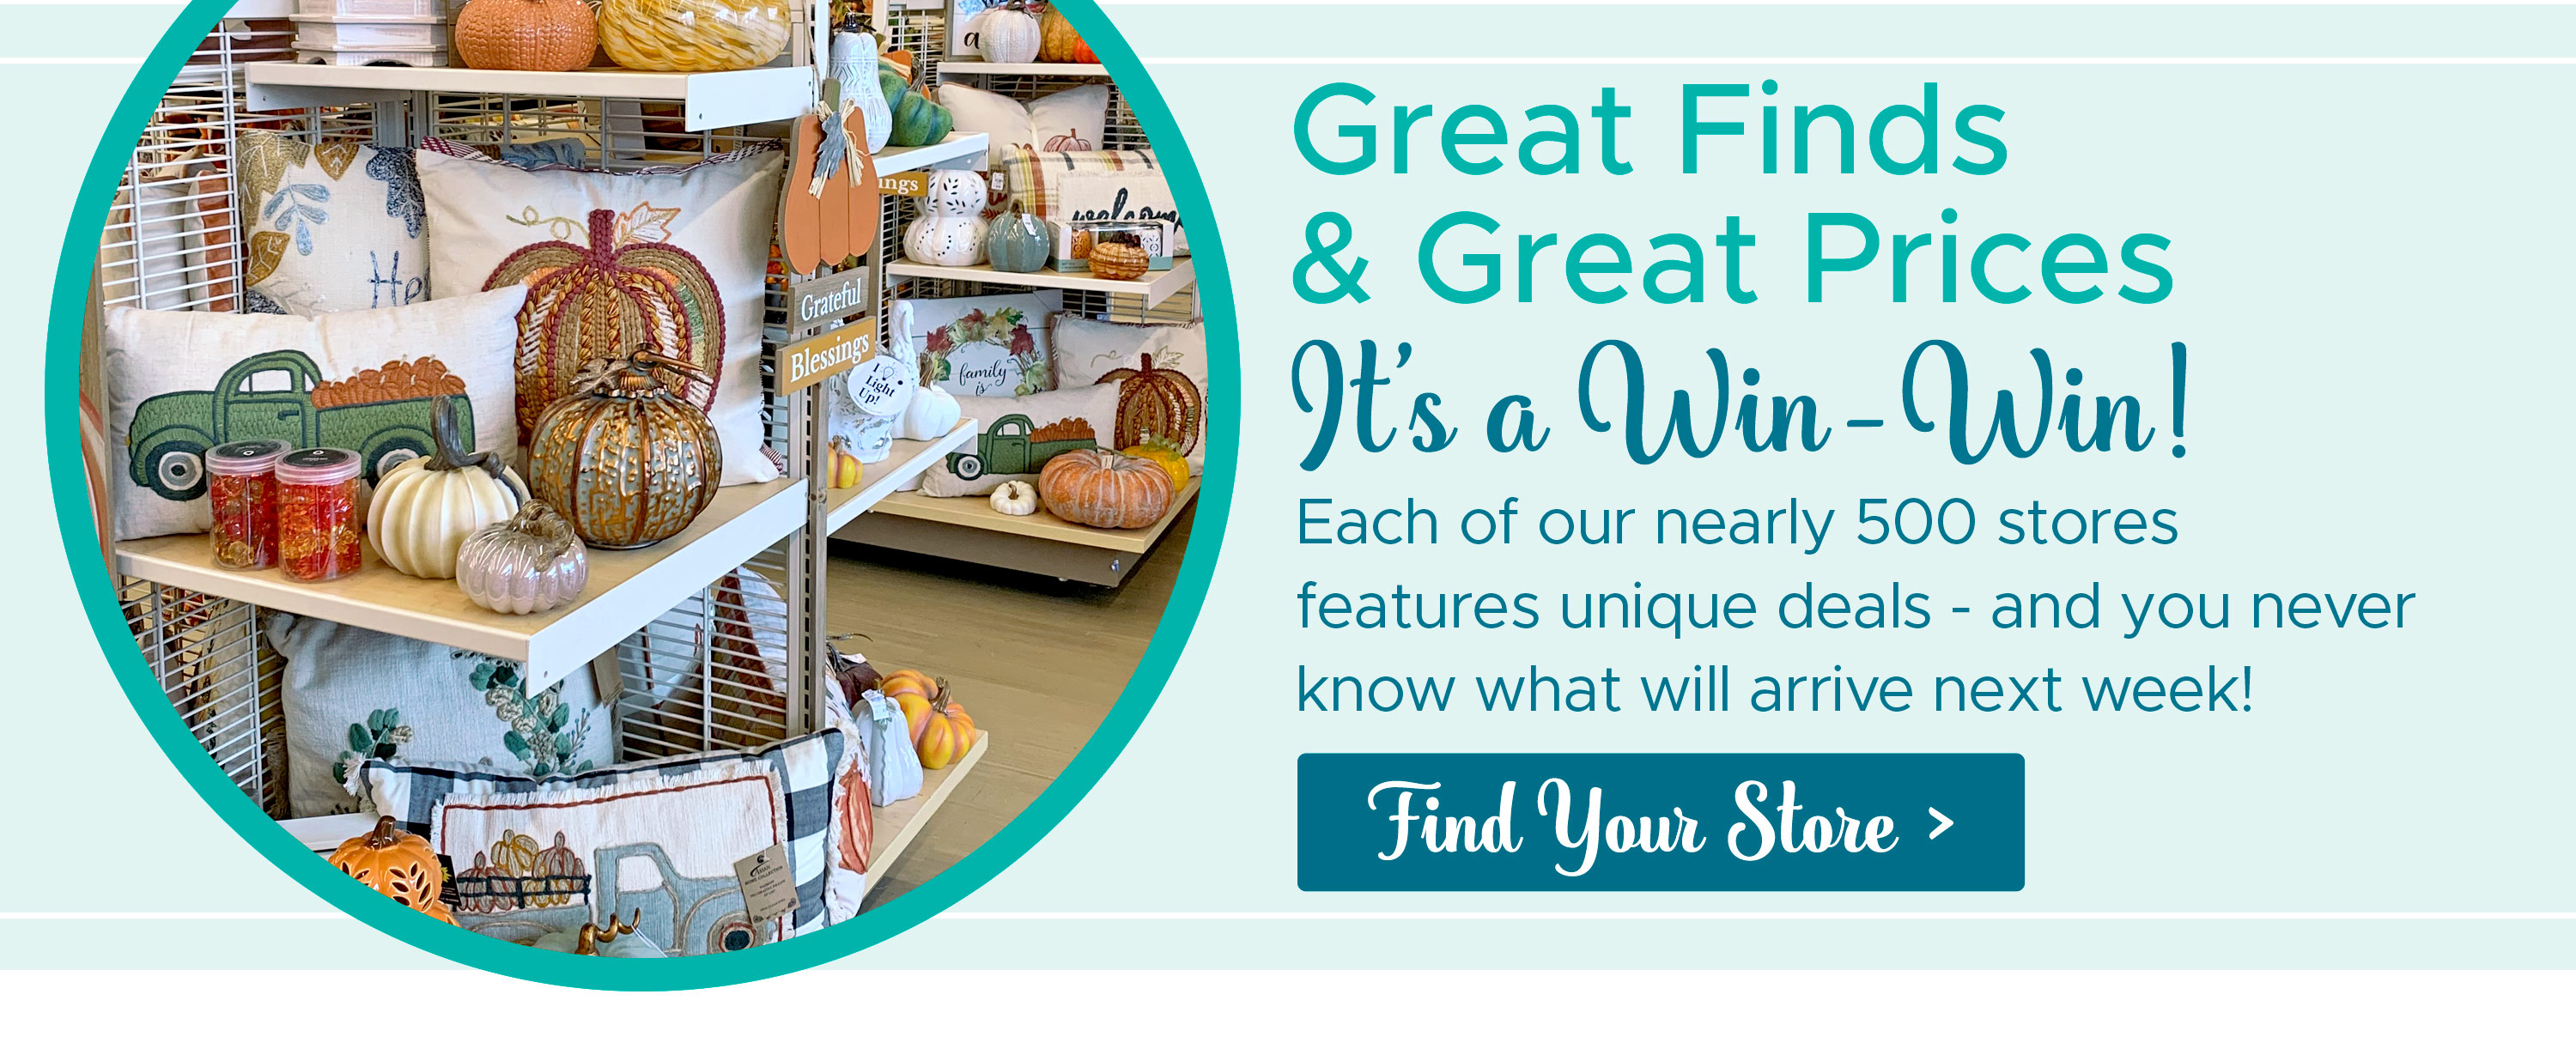 Great Finds & Great Prices, It's a Win-Win! Each of our nearly 500 stores features unique deals - and you never know what will arrive next week! Find Your Store >